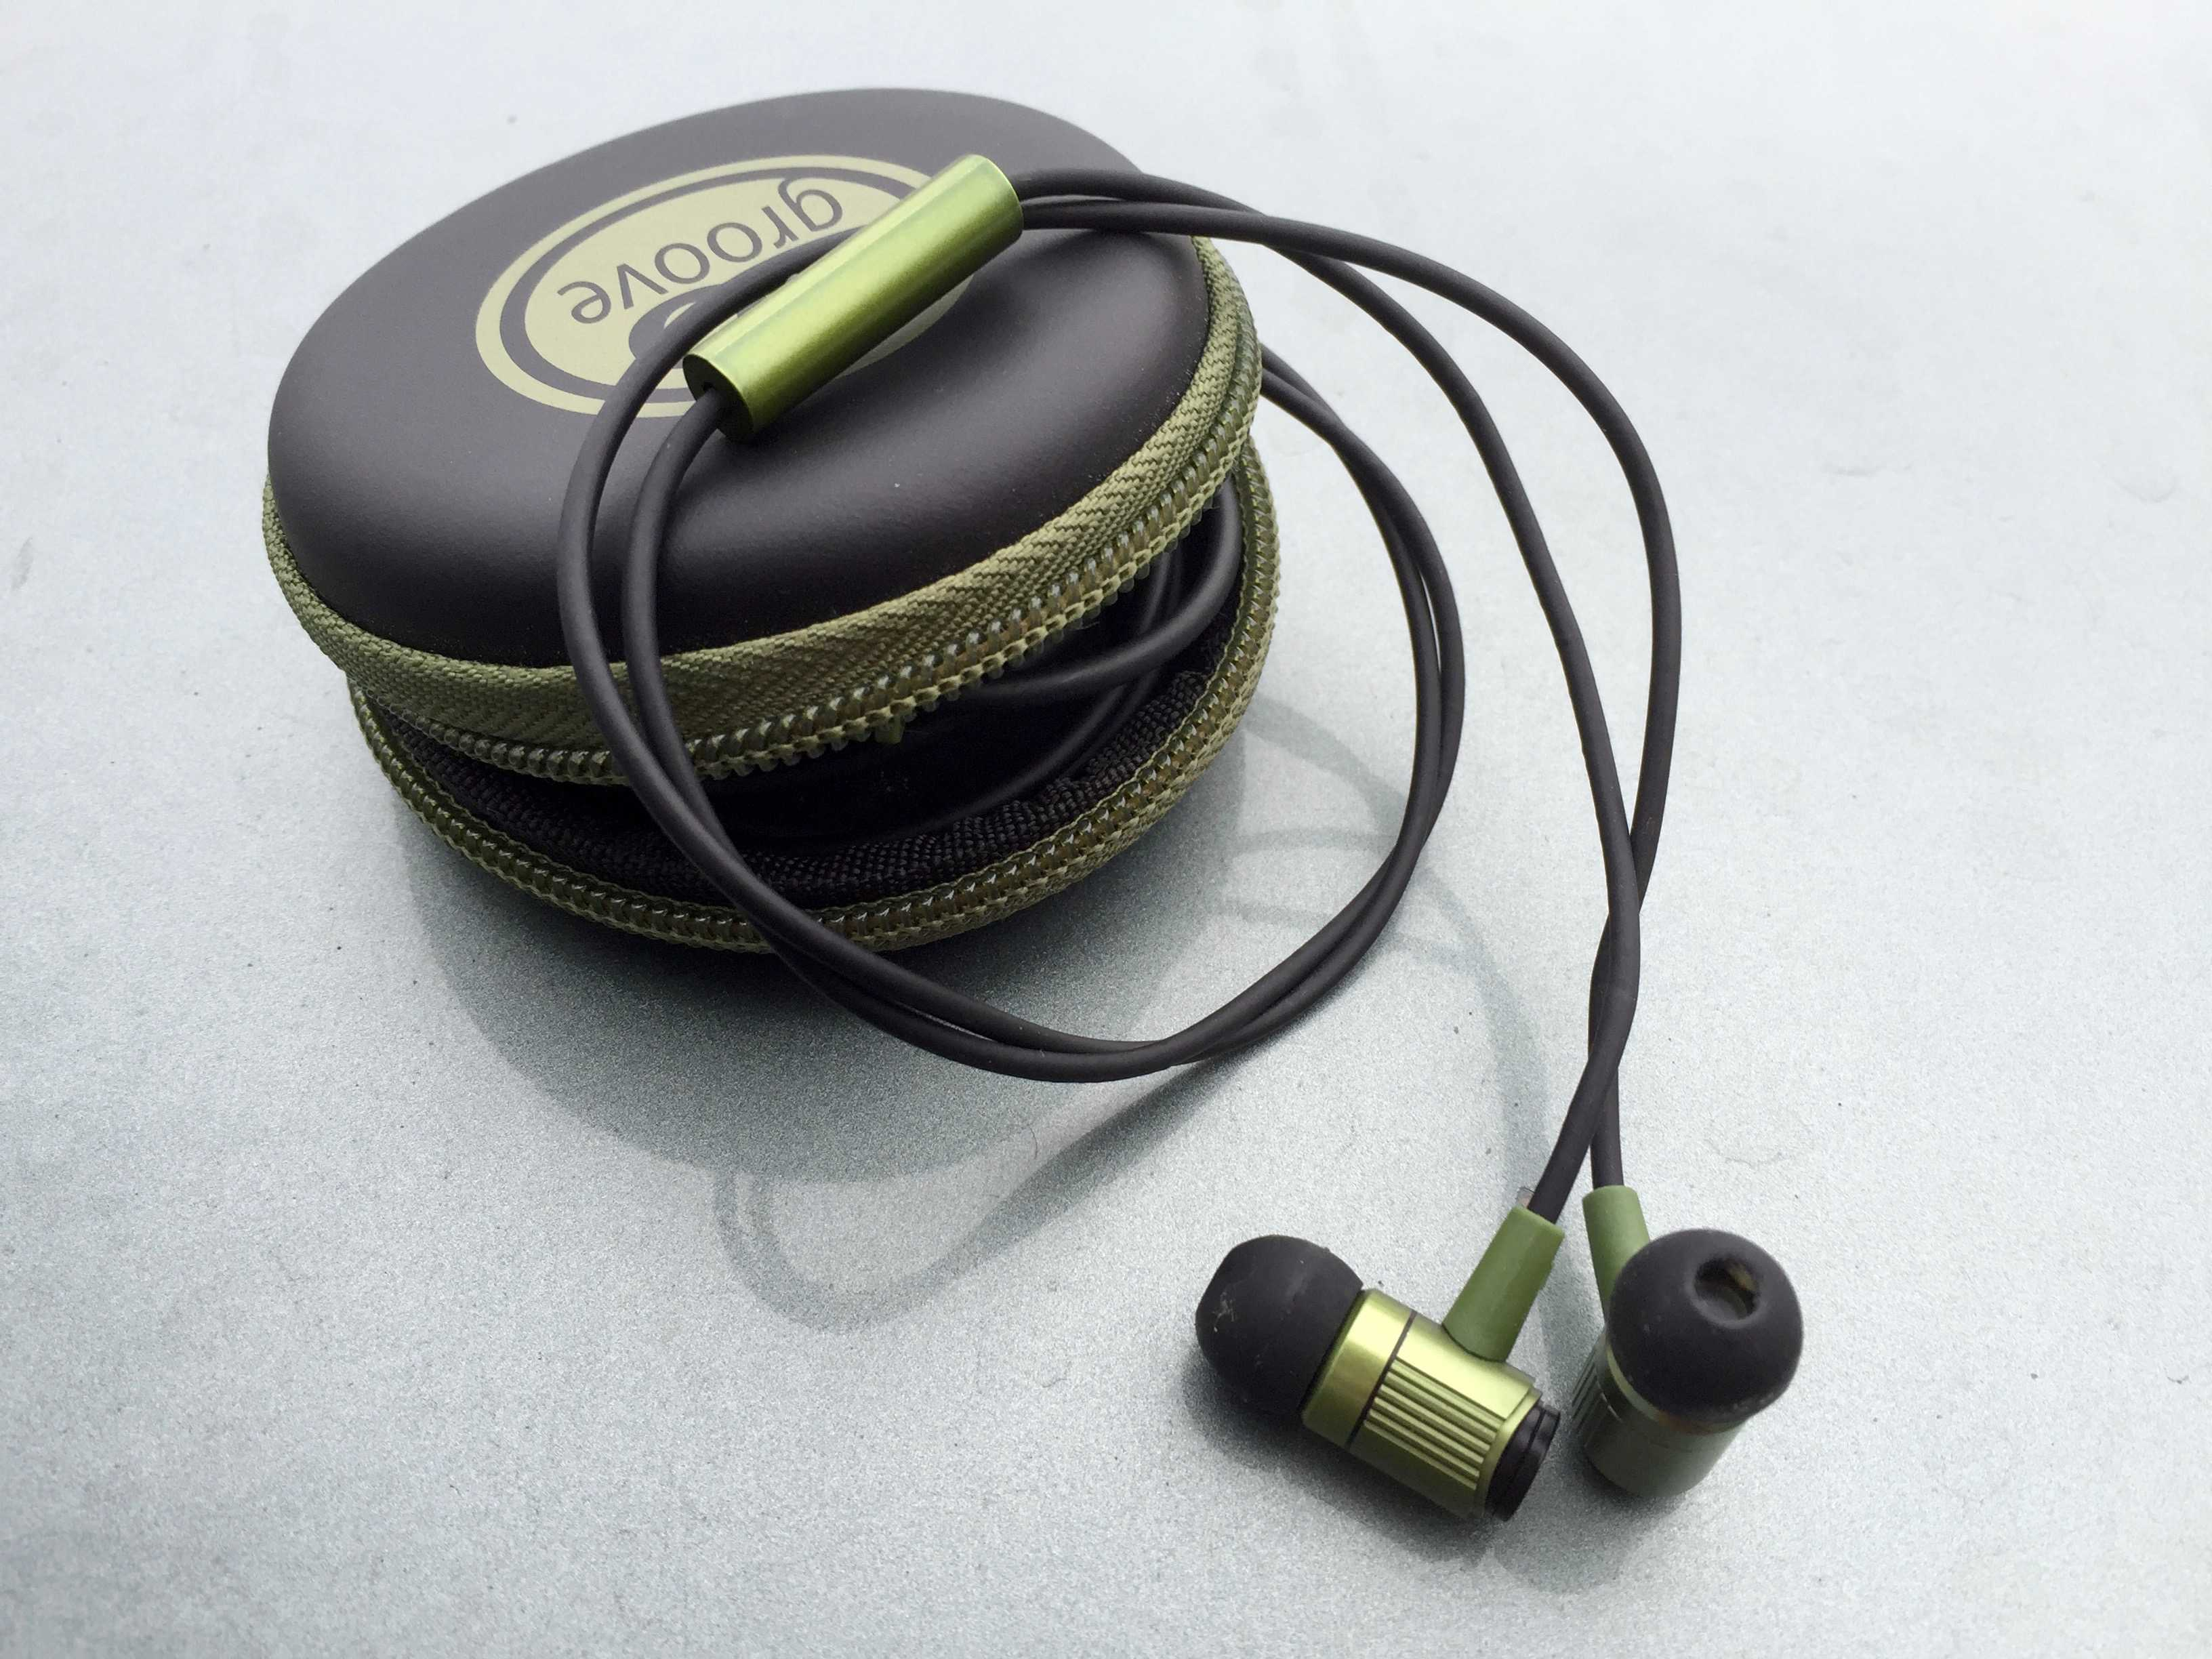 These earbuds are so rugged, you'll love them a long time.